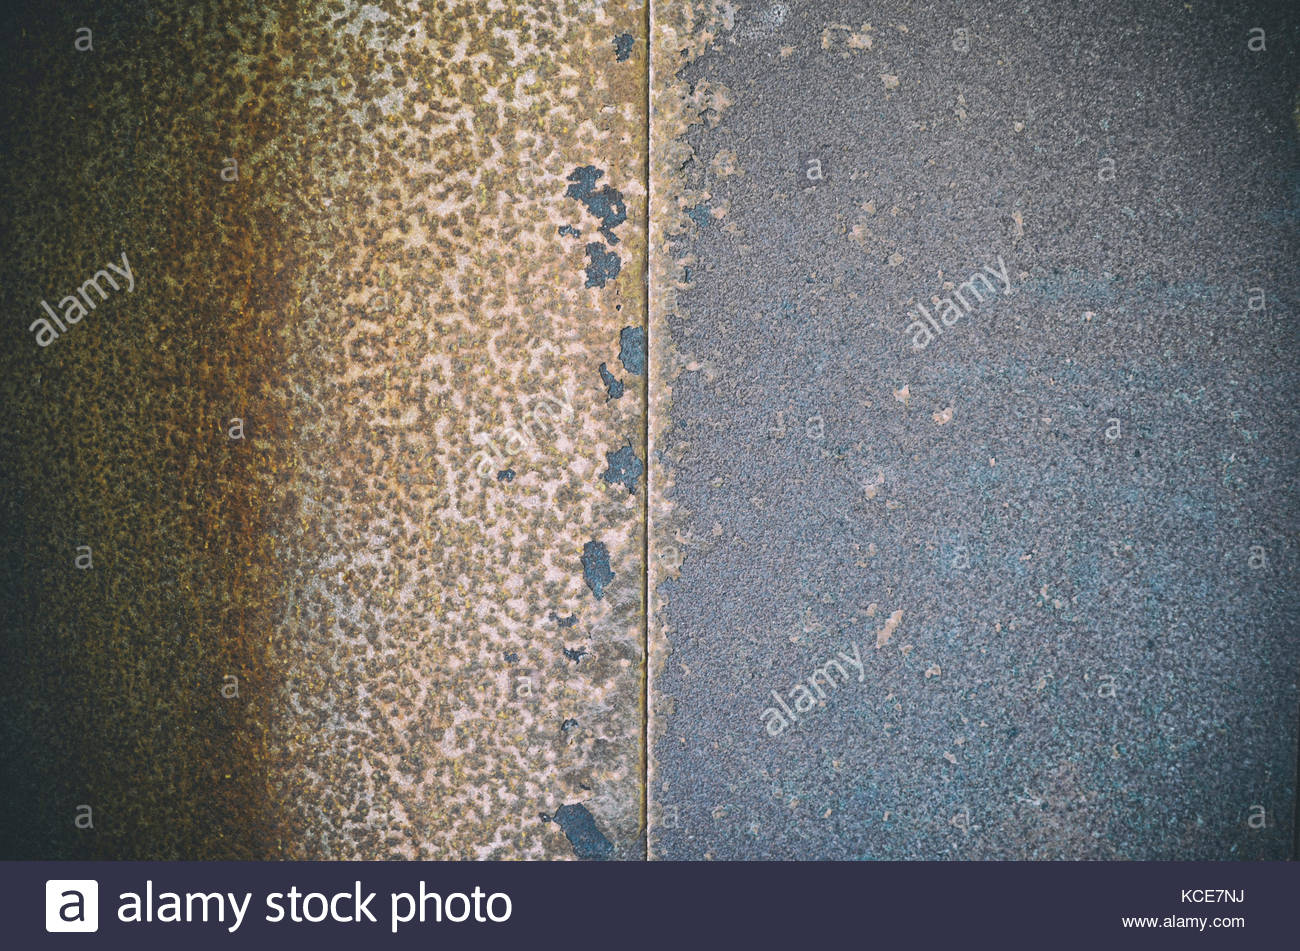 A corroded surface - Stock Image